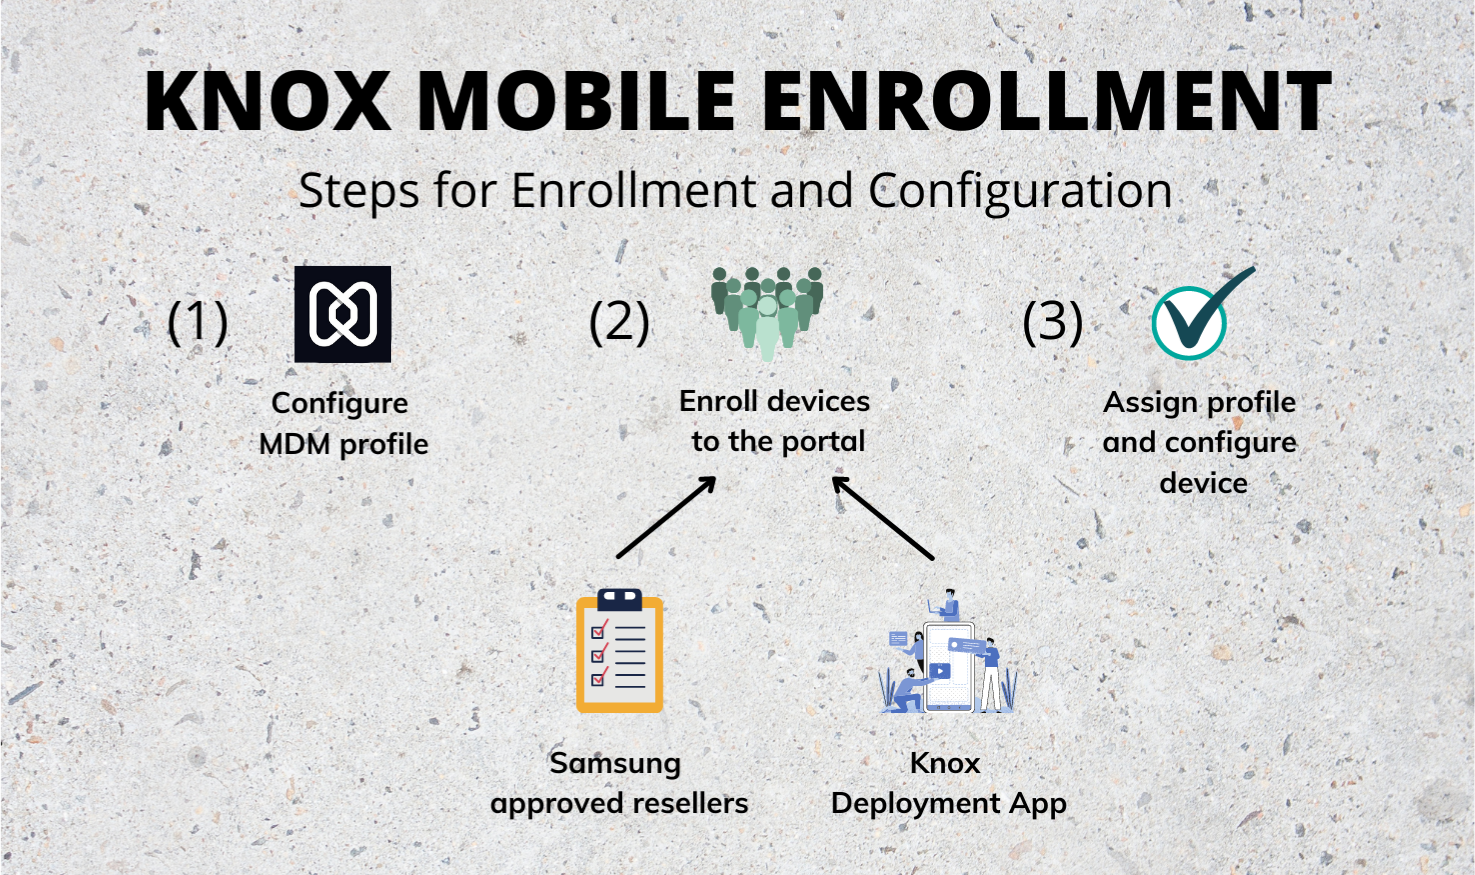 Knox Mobile Enrollment - Steps for device Enrollment and Configuration